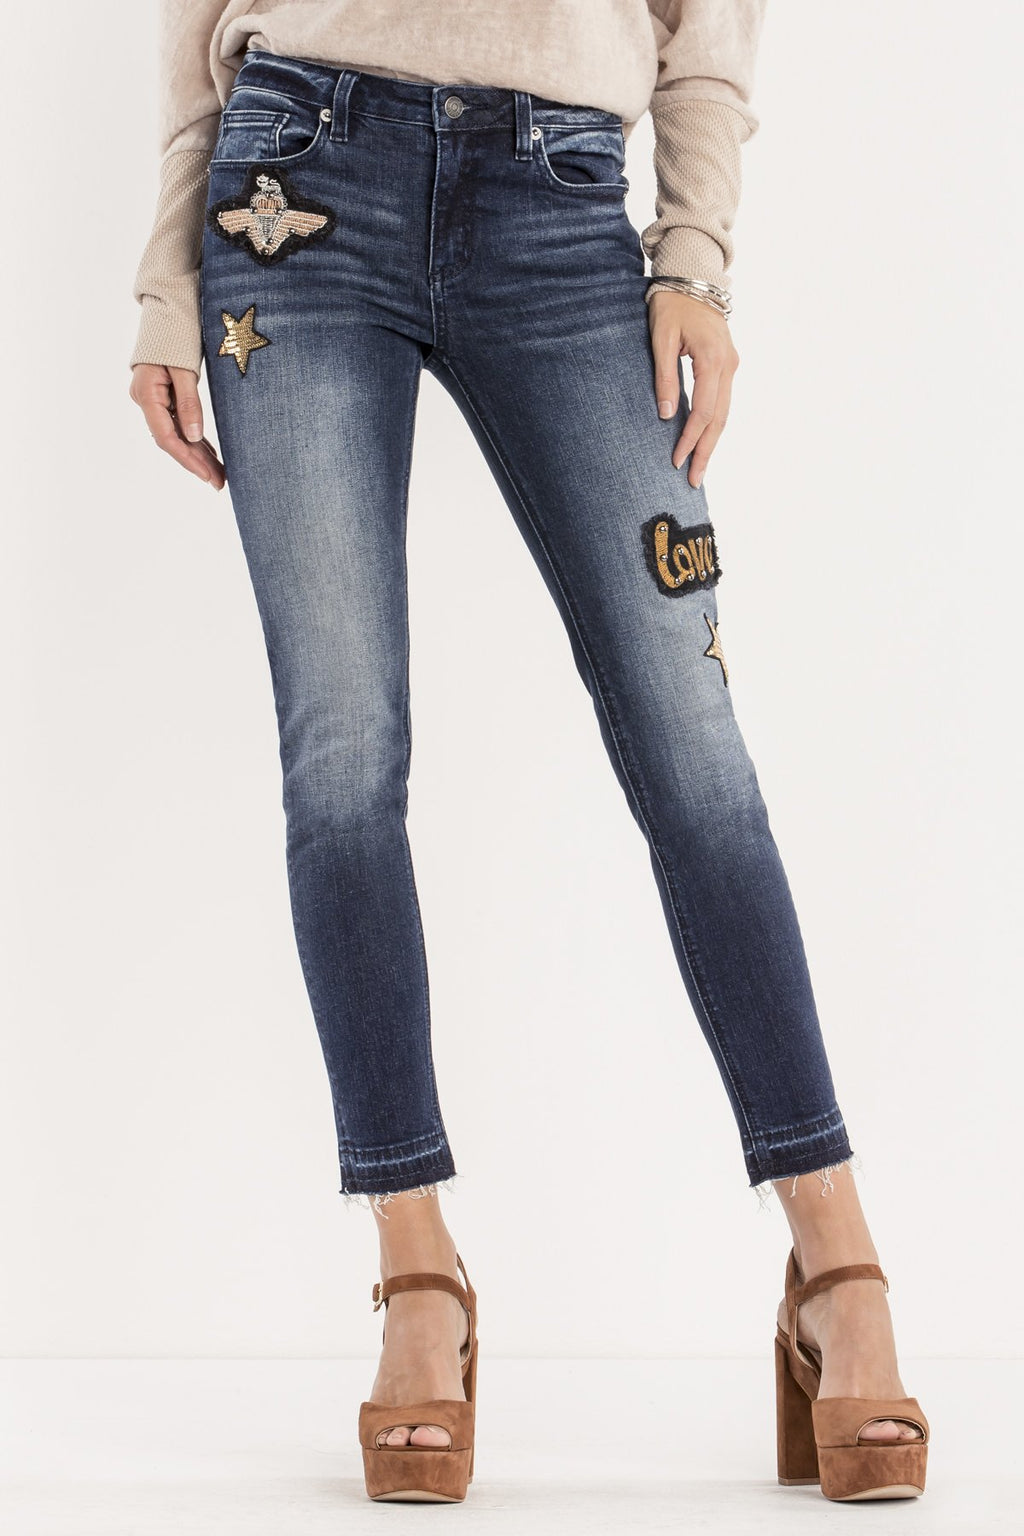 NOTHING BUT LOVE MID-RISE ANKLE SKINNY JEANS